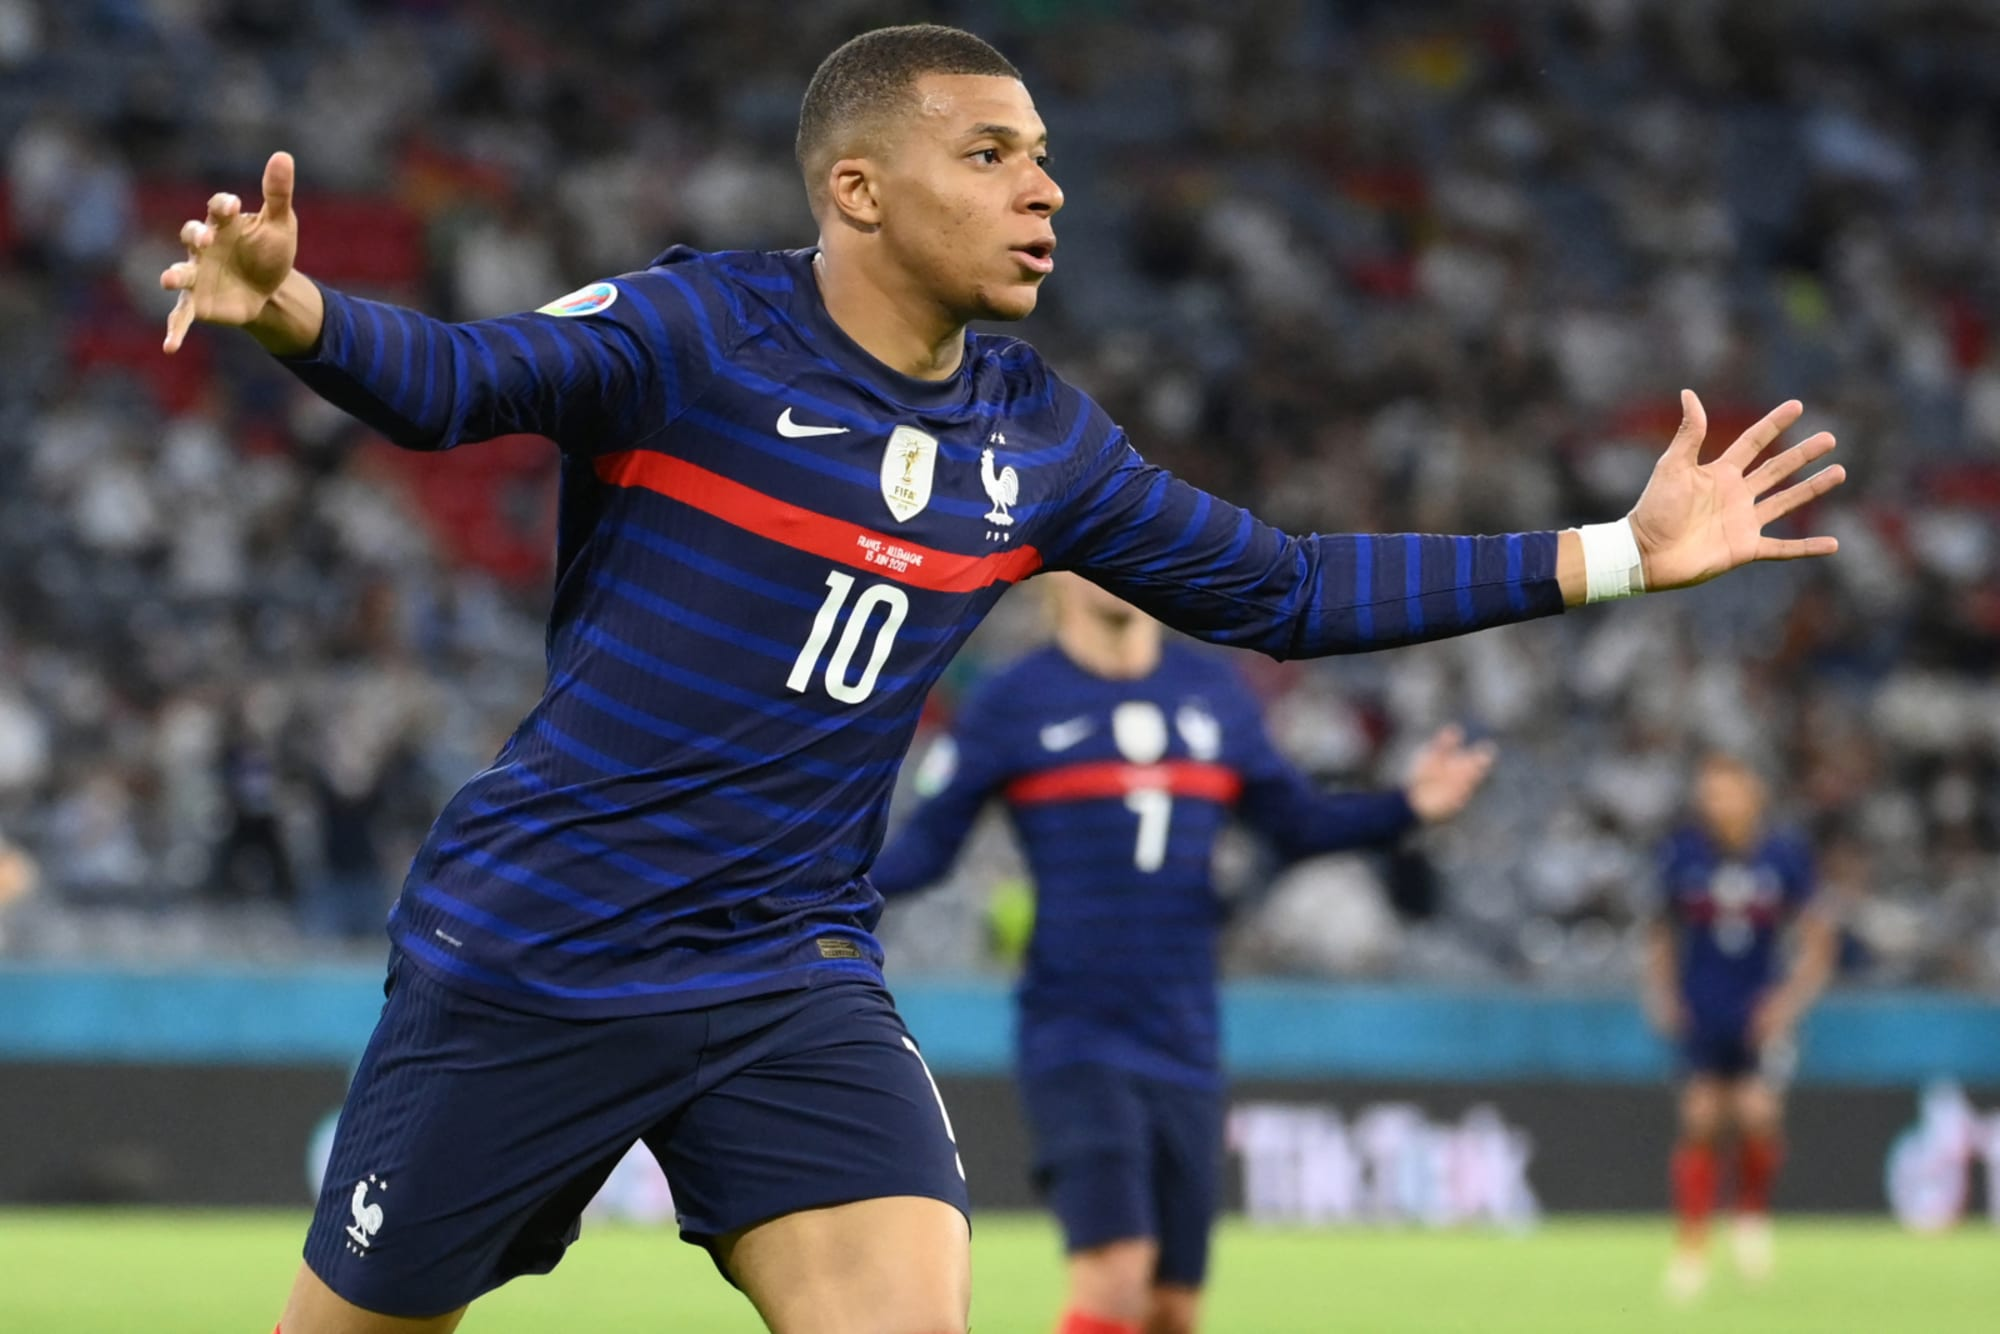 Real Madrid Transfers: Why PSG could be gaining an advantage for Kylian Mbappe